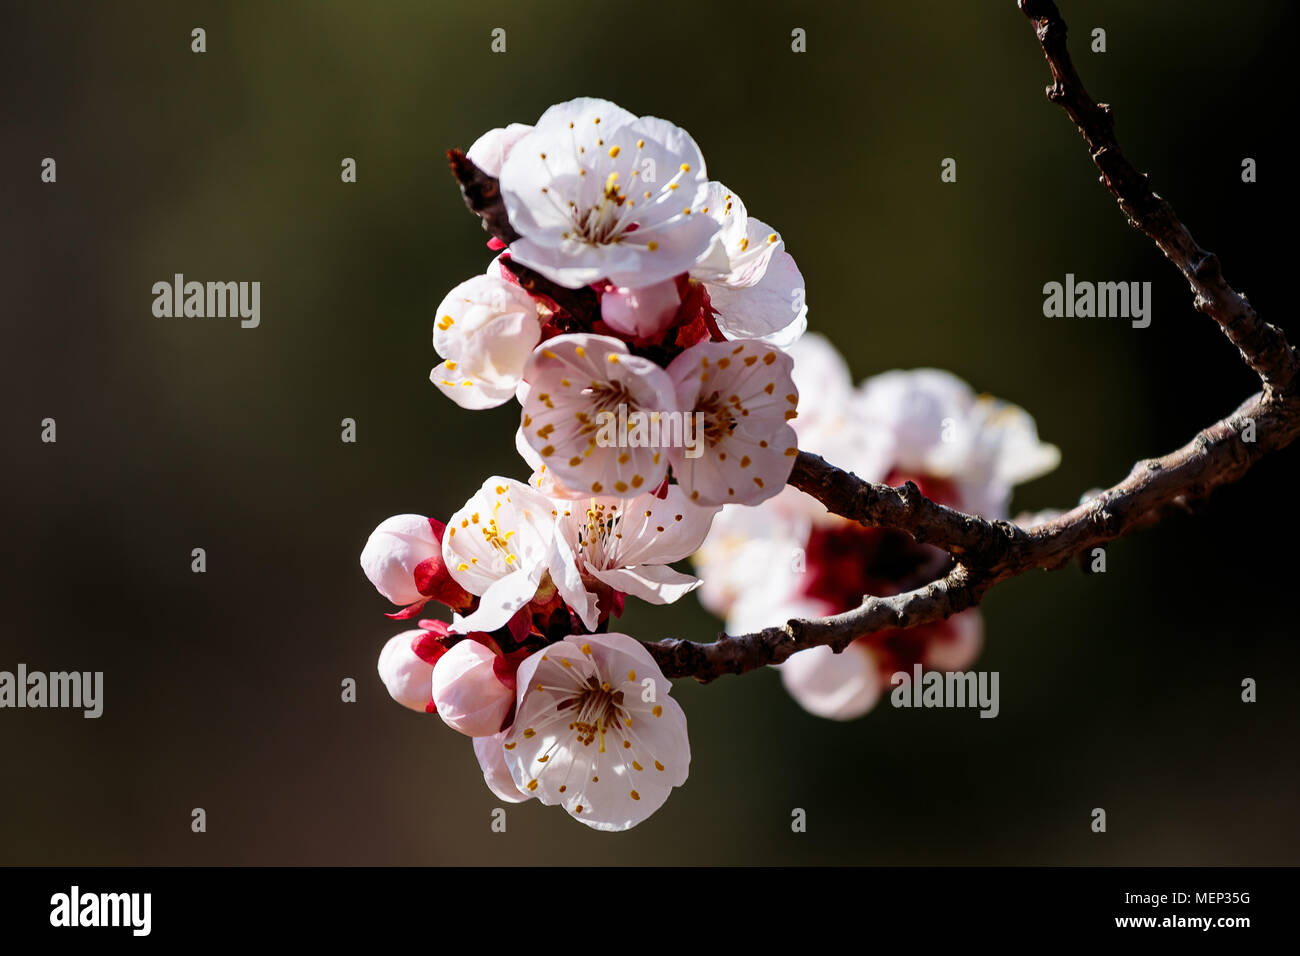 Japanese Cherry Blossoms, or Sakura, in full bloom on a beautiful spring day in Kanagawa, Japan. this small cluster is isolated for use in composites  - Stock Image